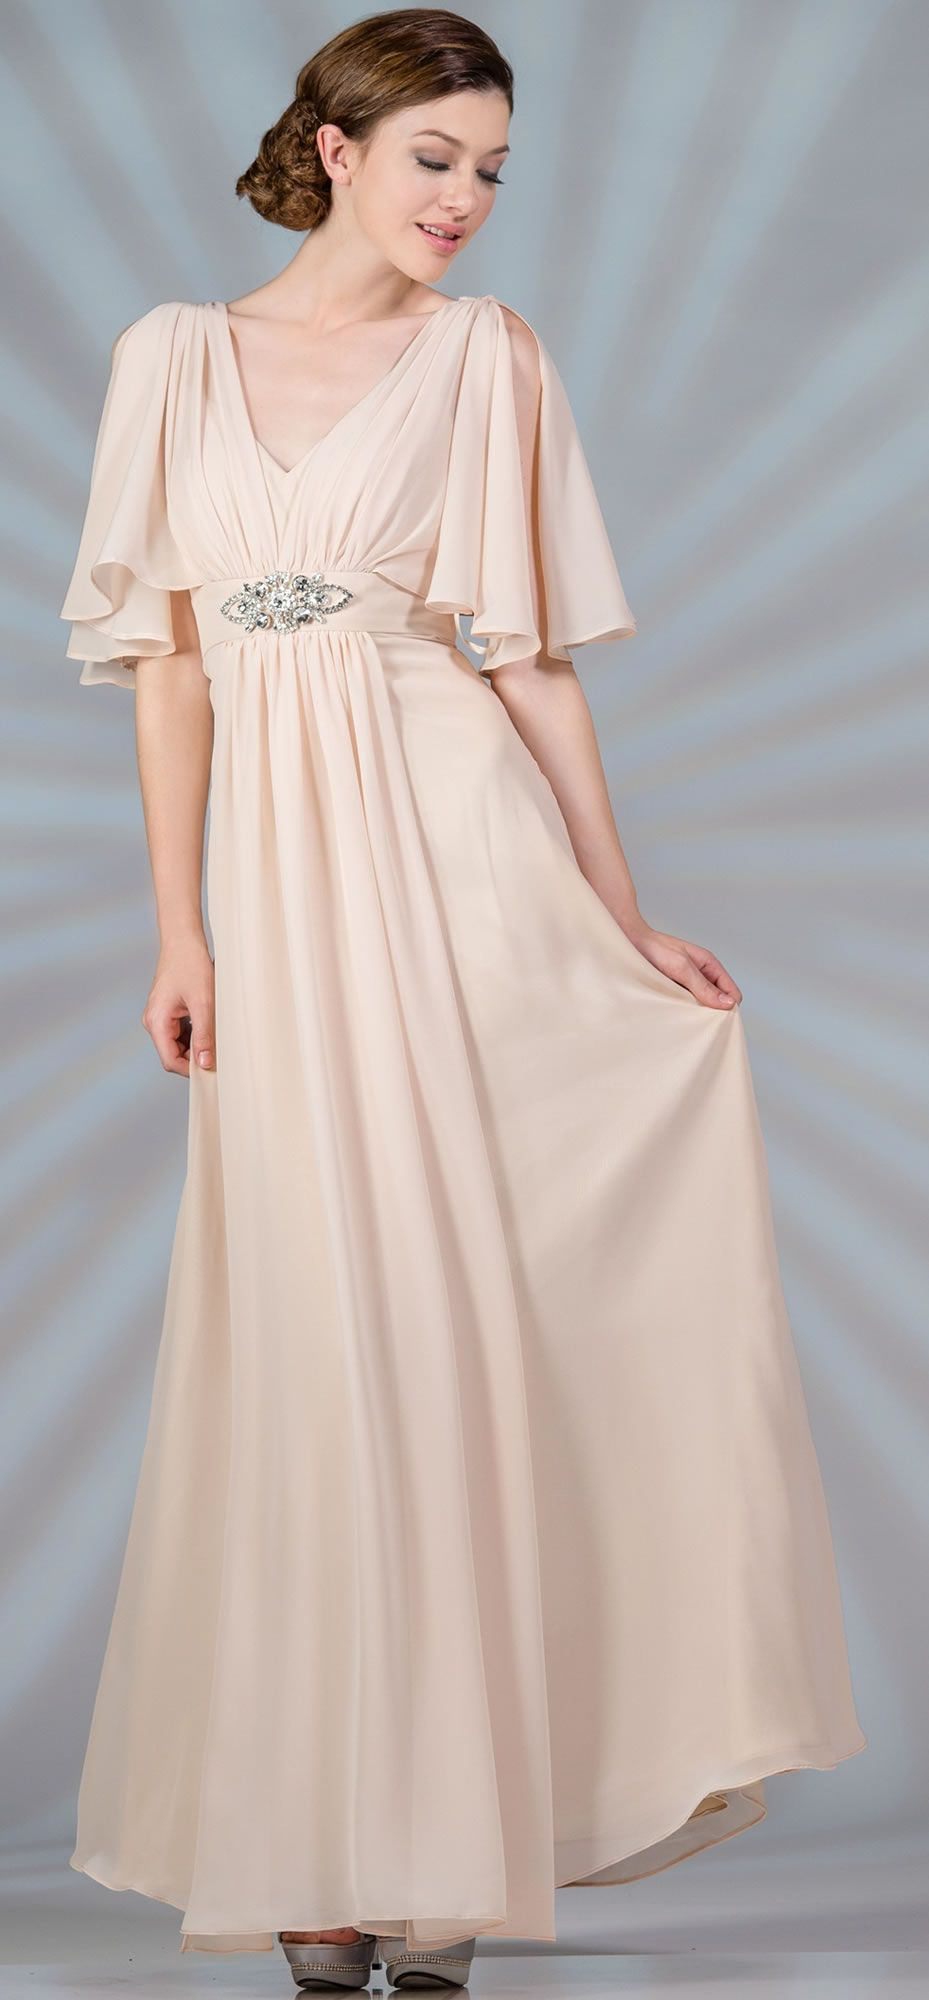 363317c2b6d25 Champagne Butterfly Sleeves Modest Evening Gowns - Discountdressup ...